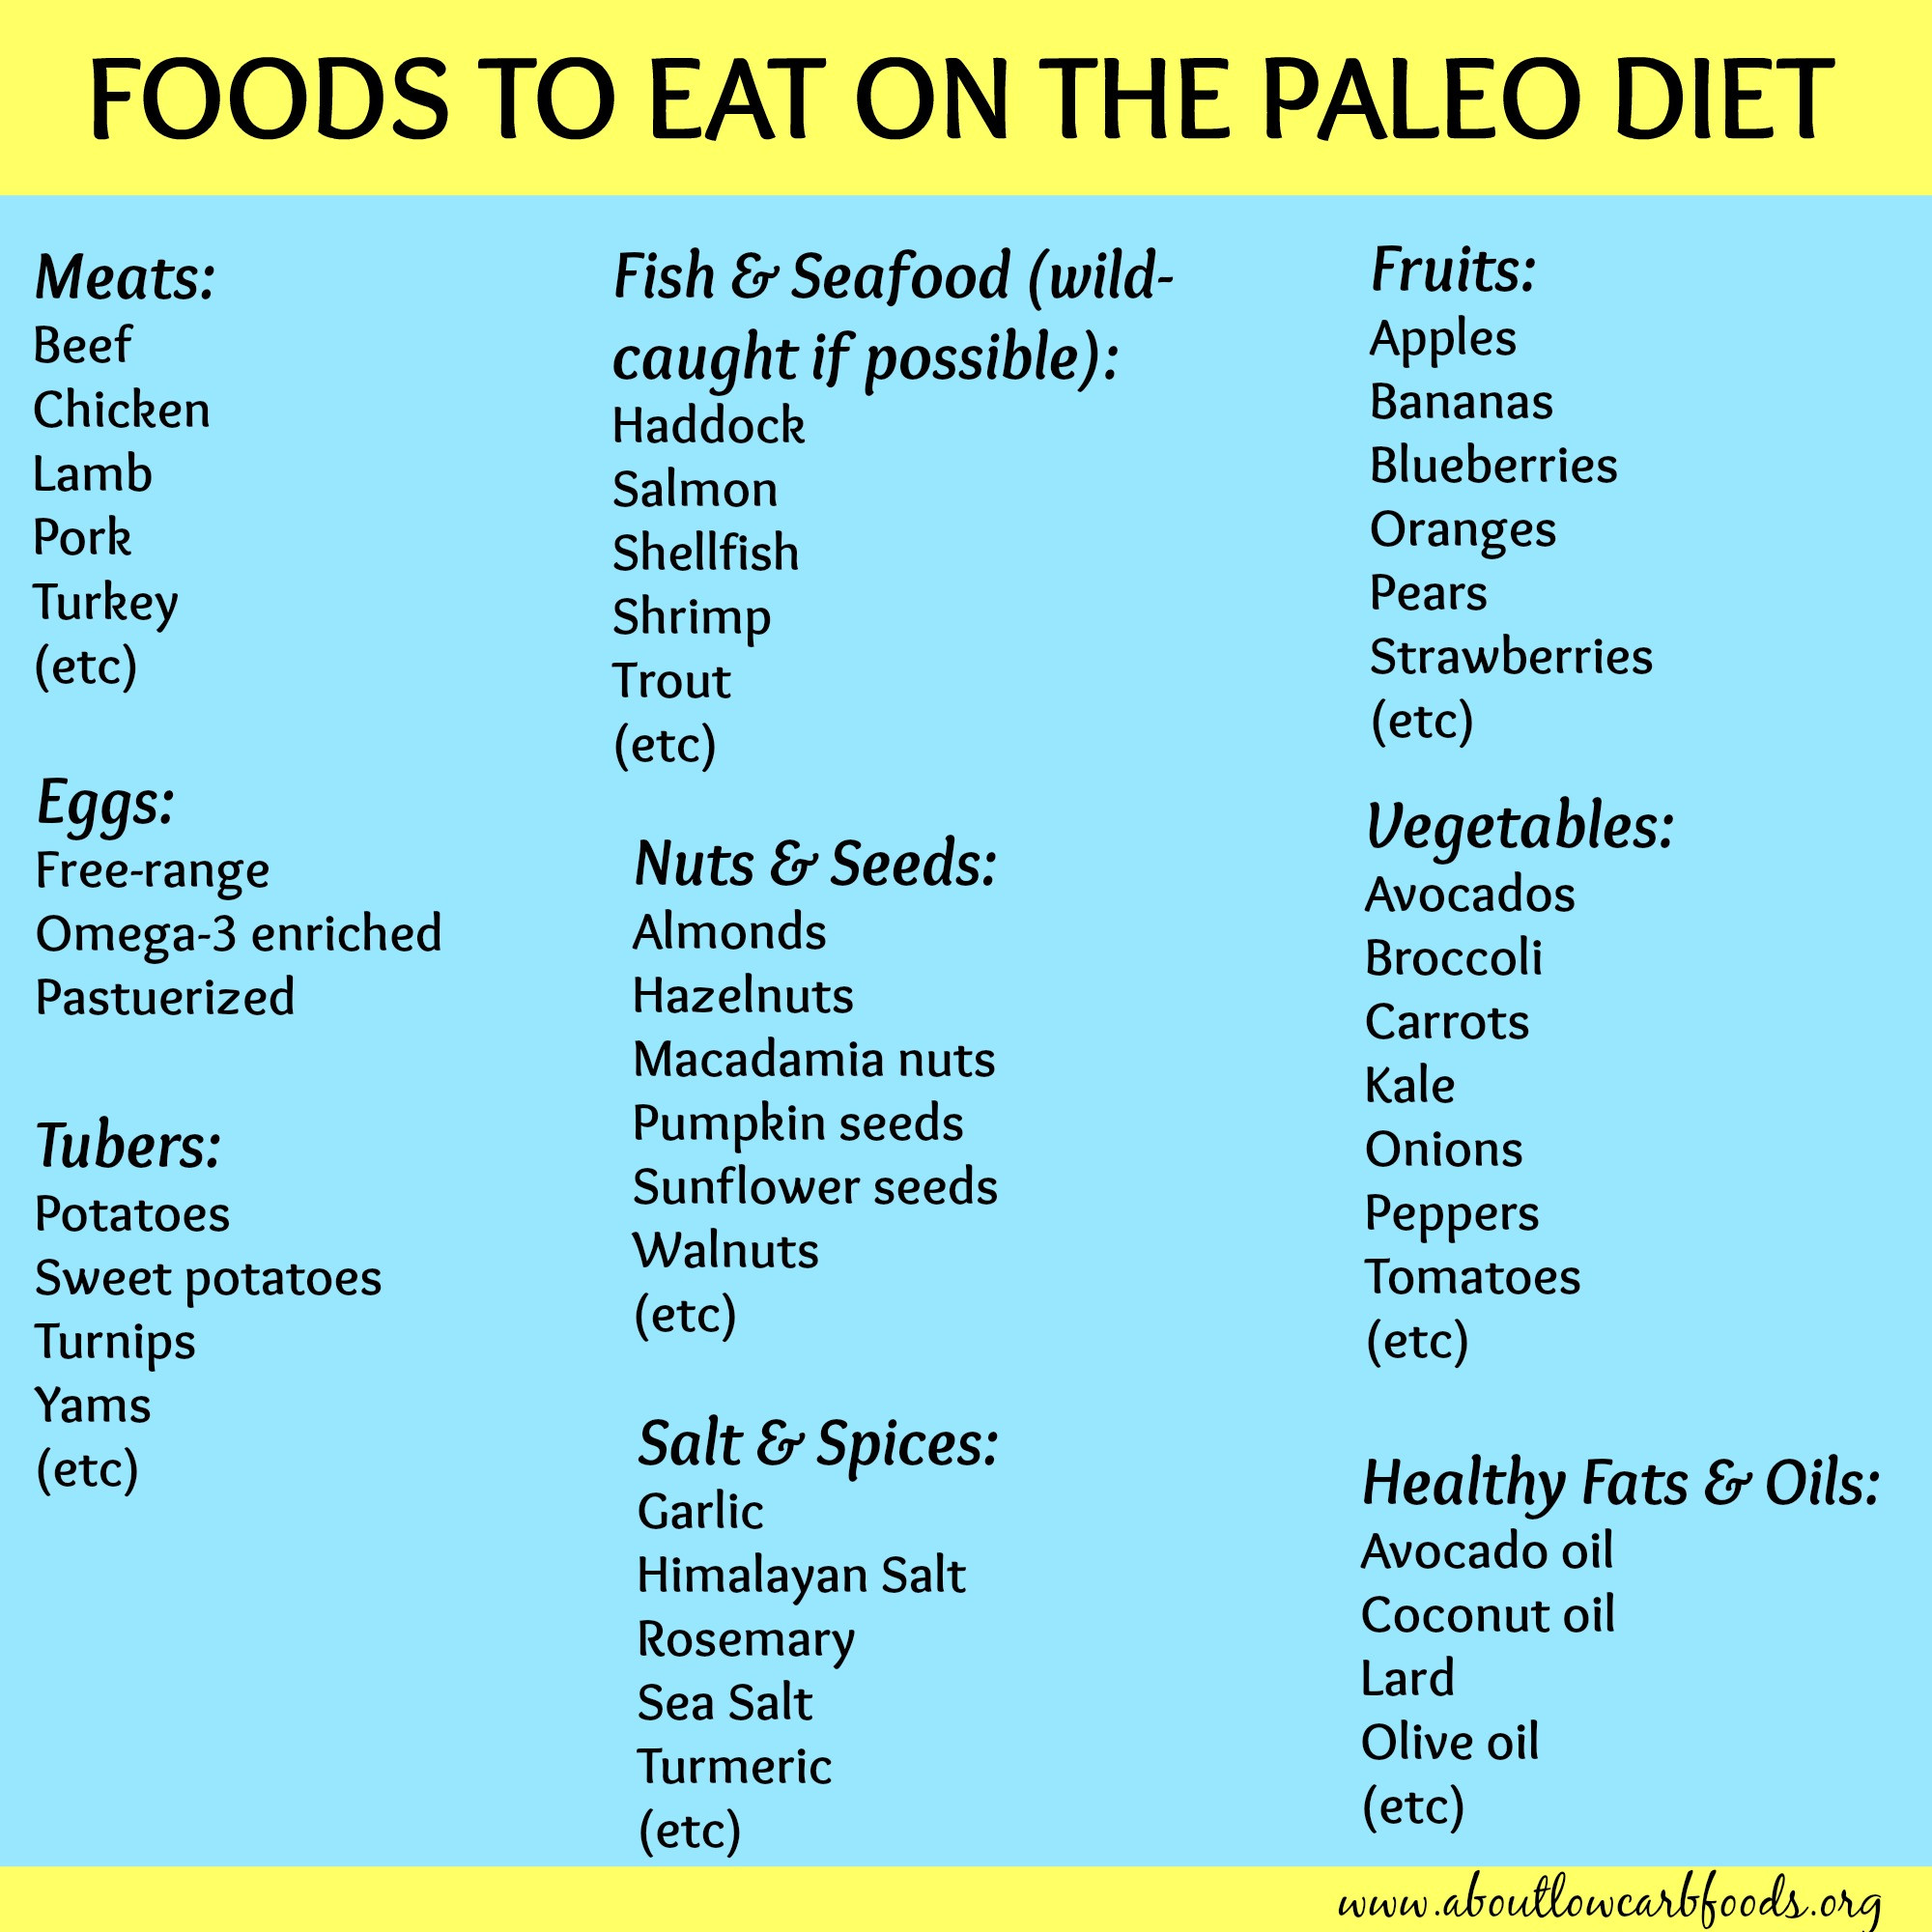 Paleo Diet Meal Plans  A Paleo Diet Plan That Can Save Your Life About Low Carb